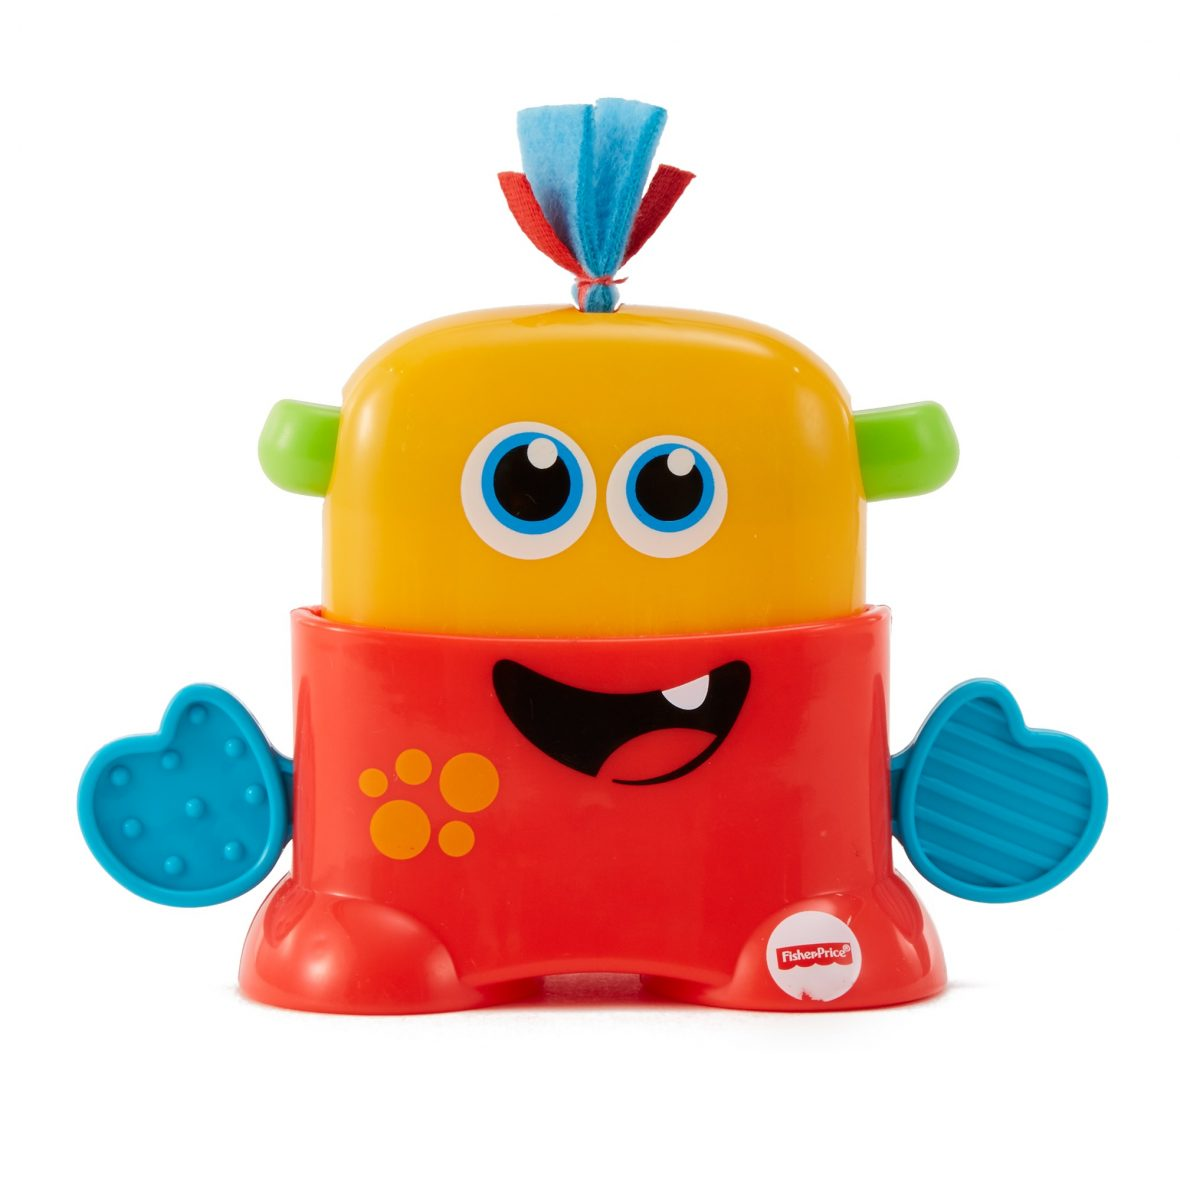 Fisher Price Tote – Along Monster Early Learner Toys for Kids age 6M+